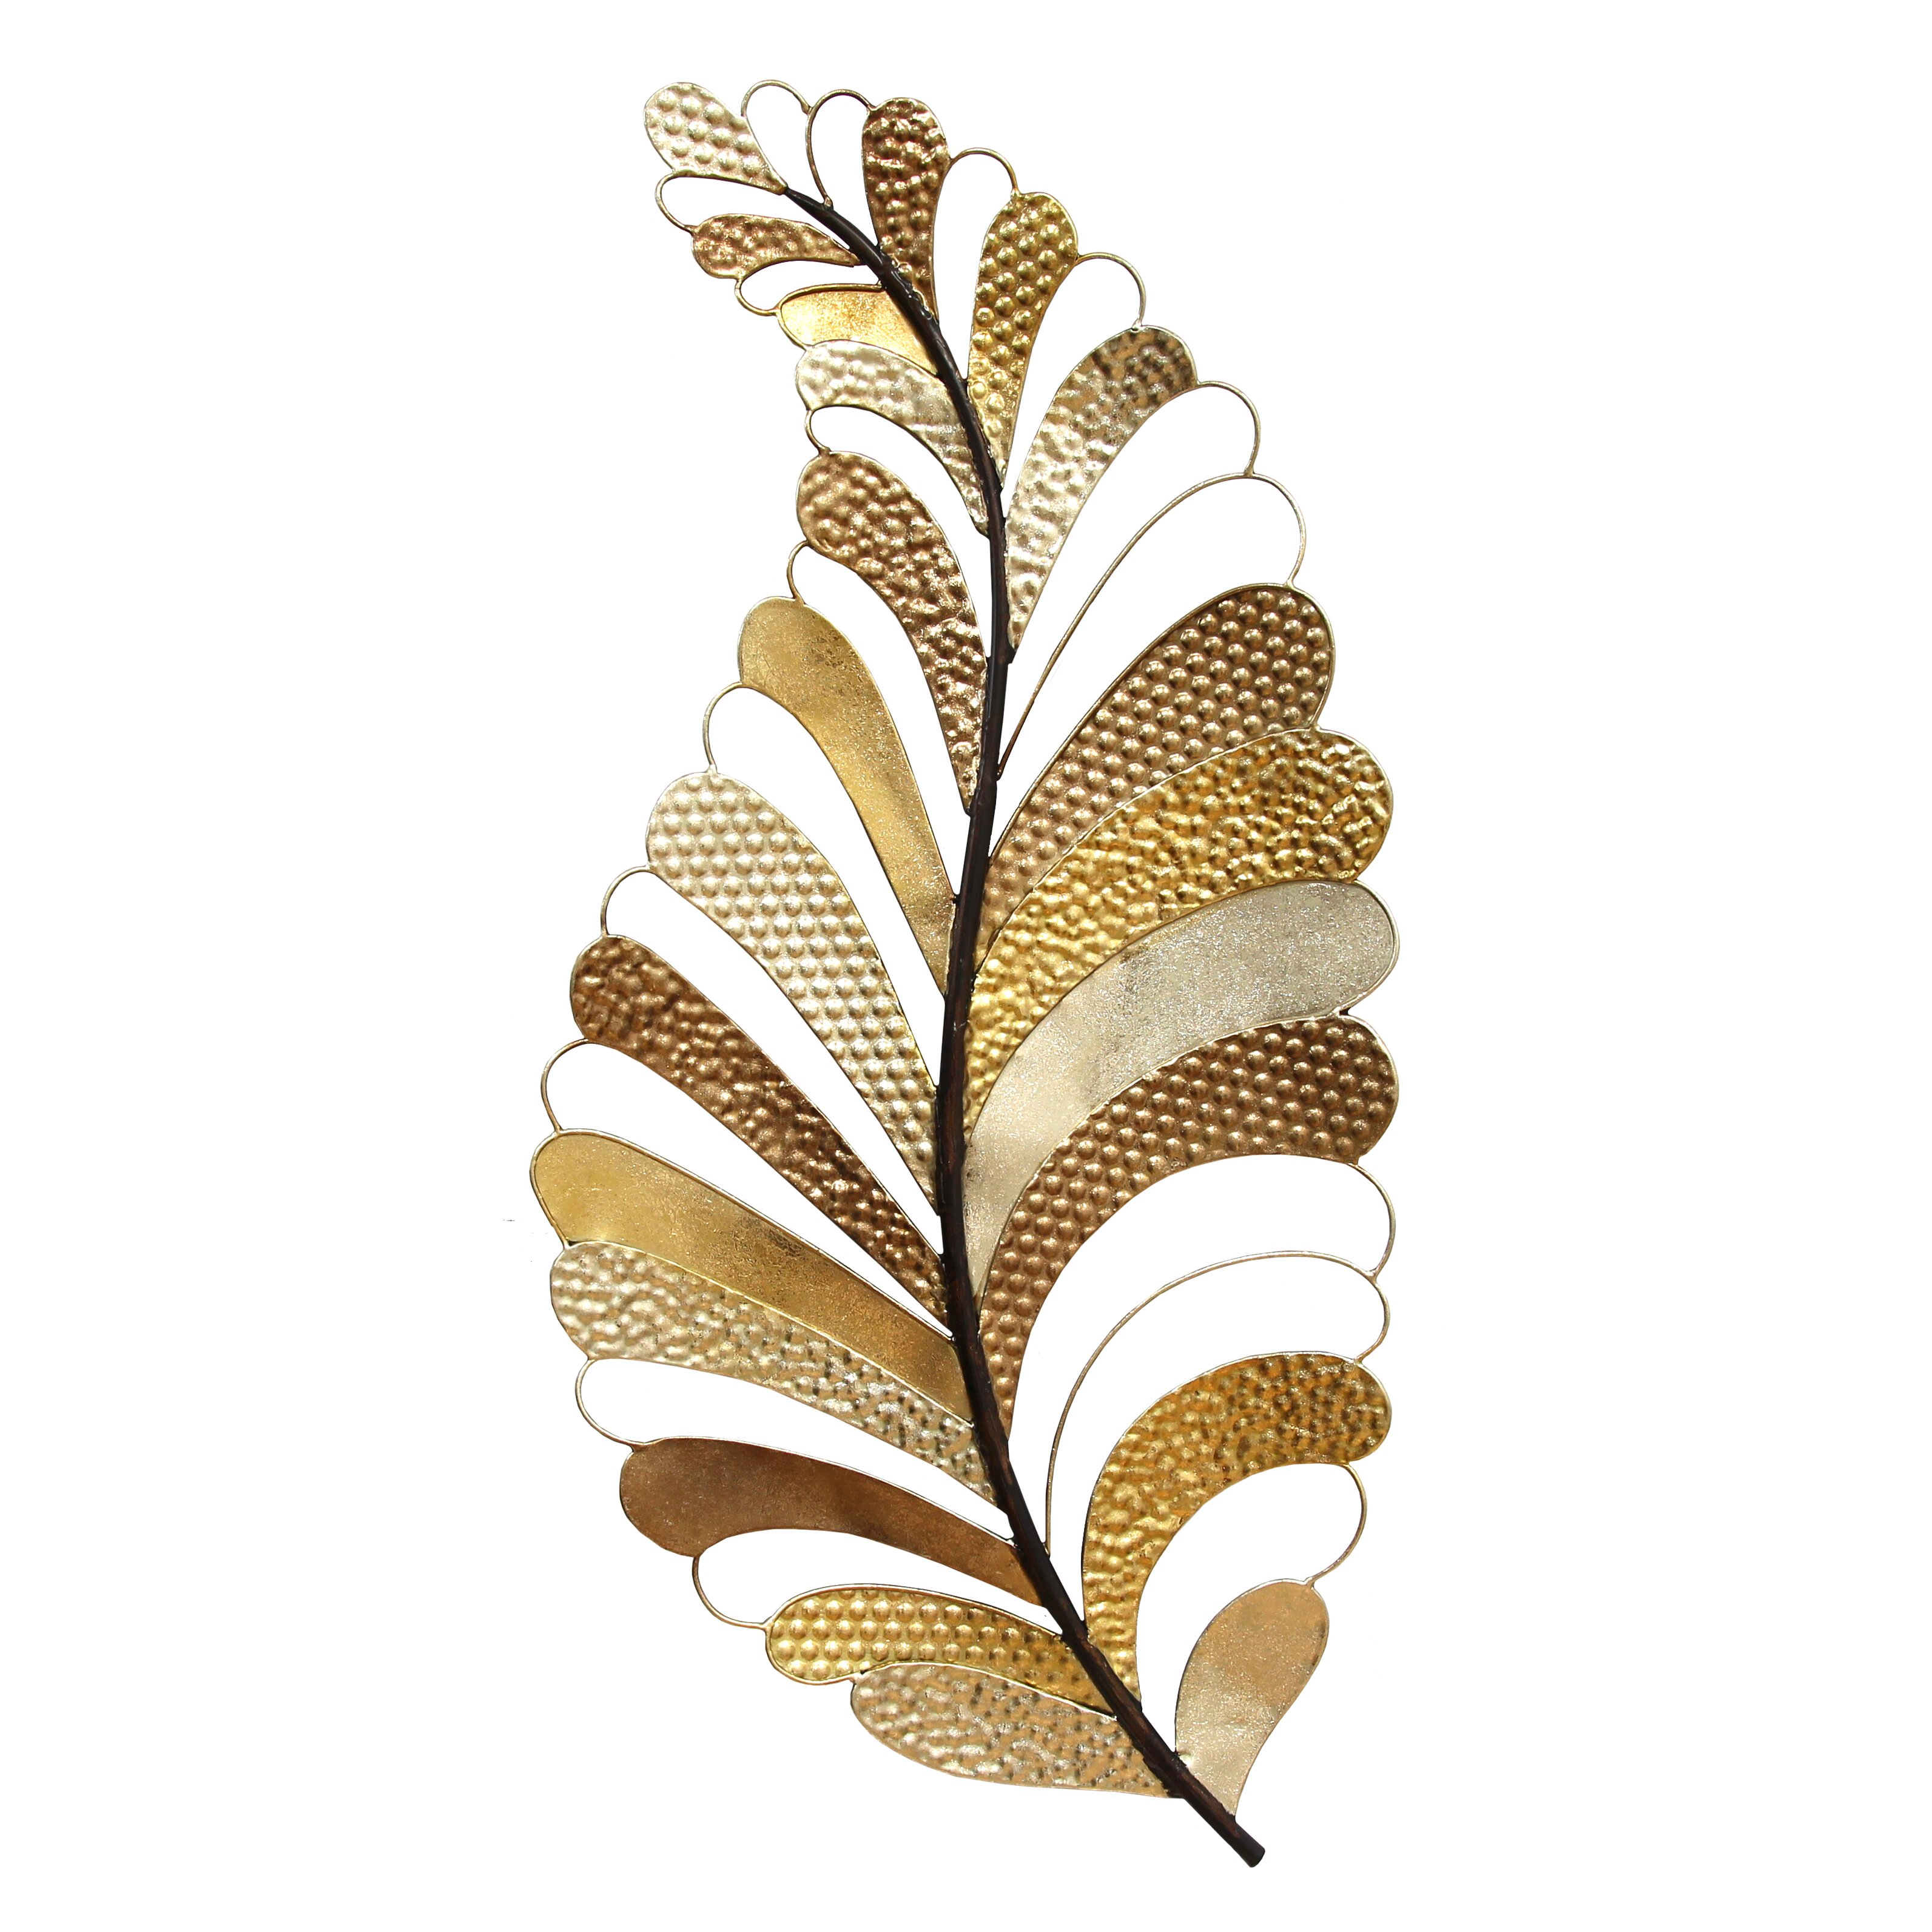 Jun 21, · Gold leaf is an easy way to add some glamor and luxury to your decor. Using leafing and either sizing or spray adhesive, you can decorate your ornaments with gold to create unique pieces perfect for the holidays or avupude.ml: K.